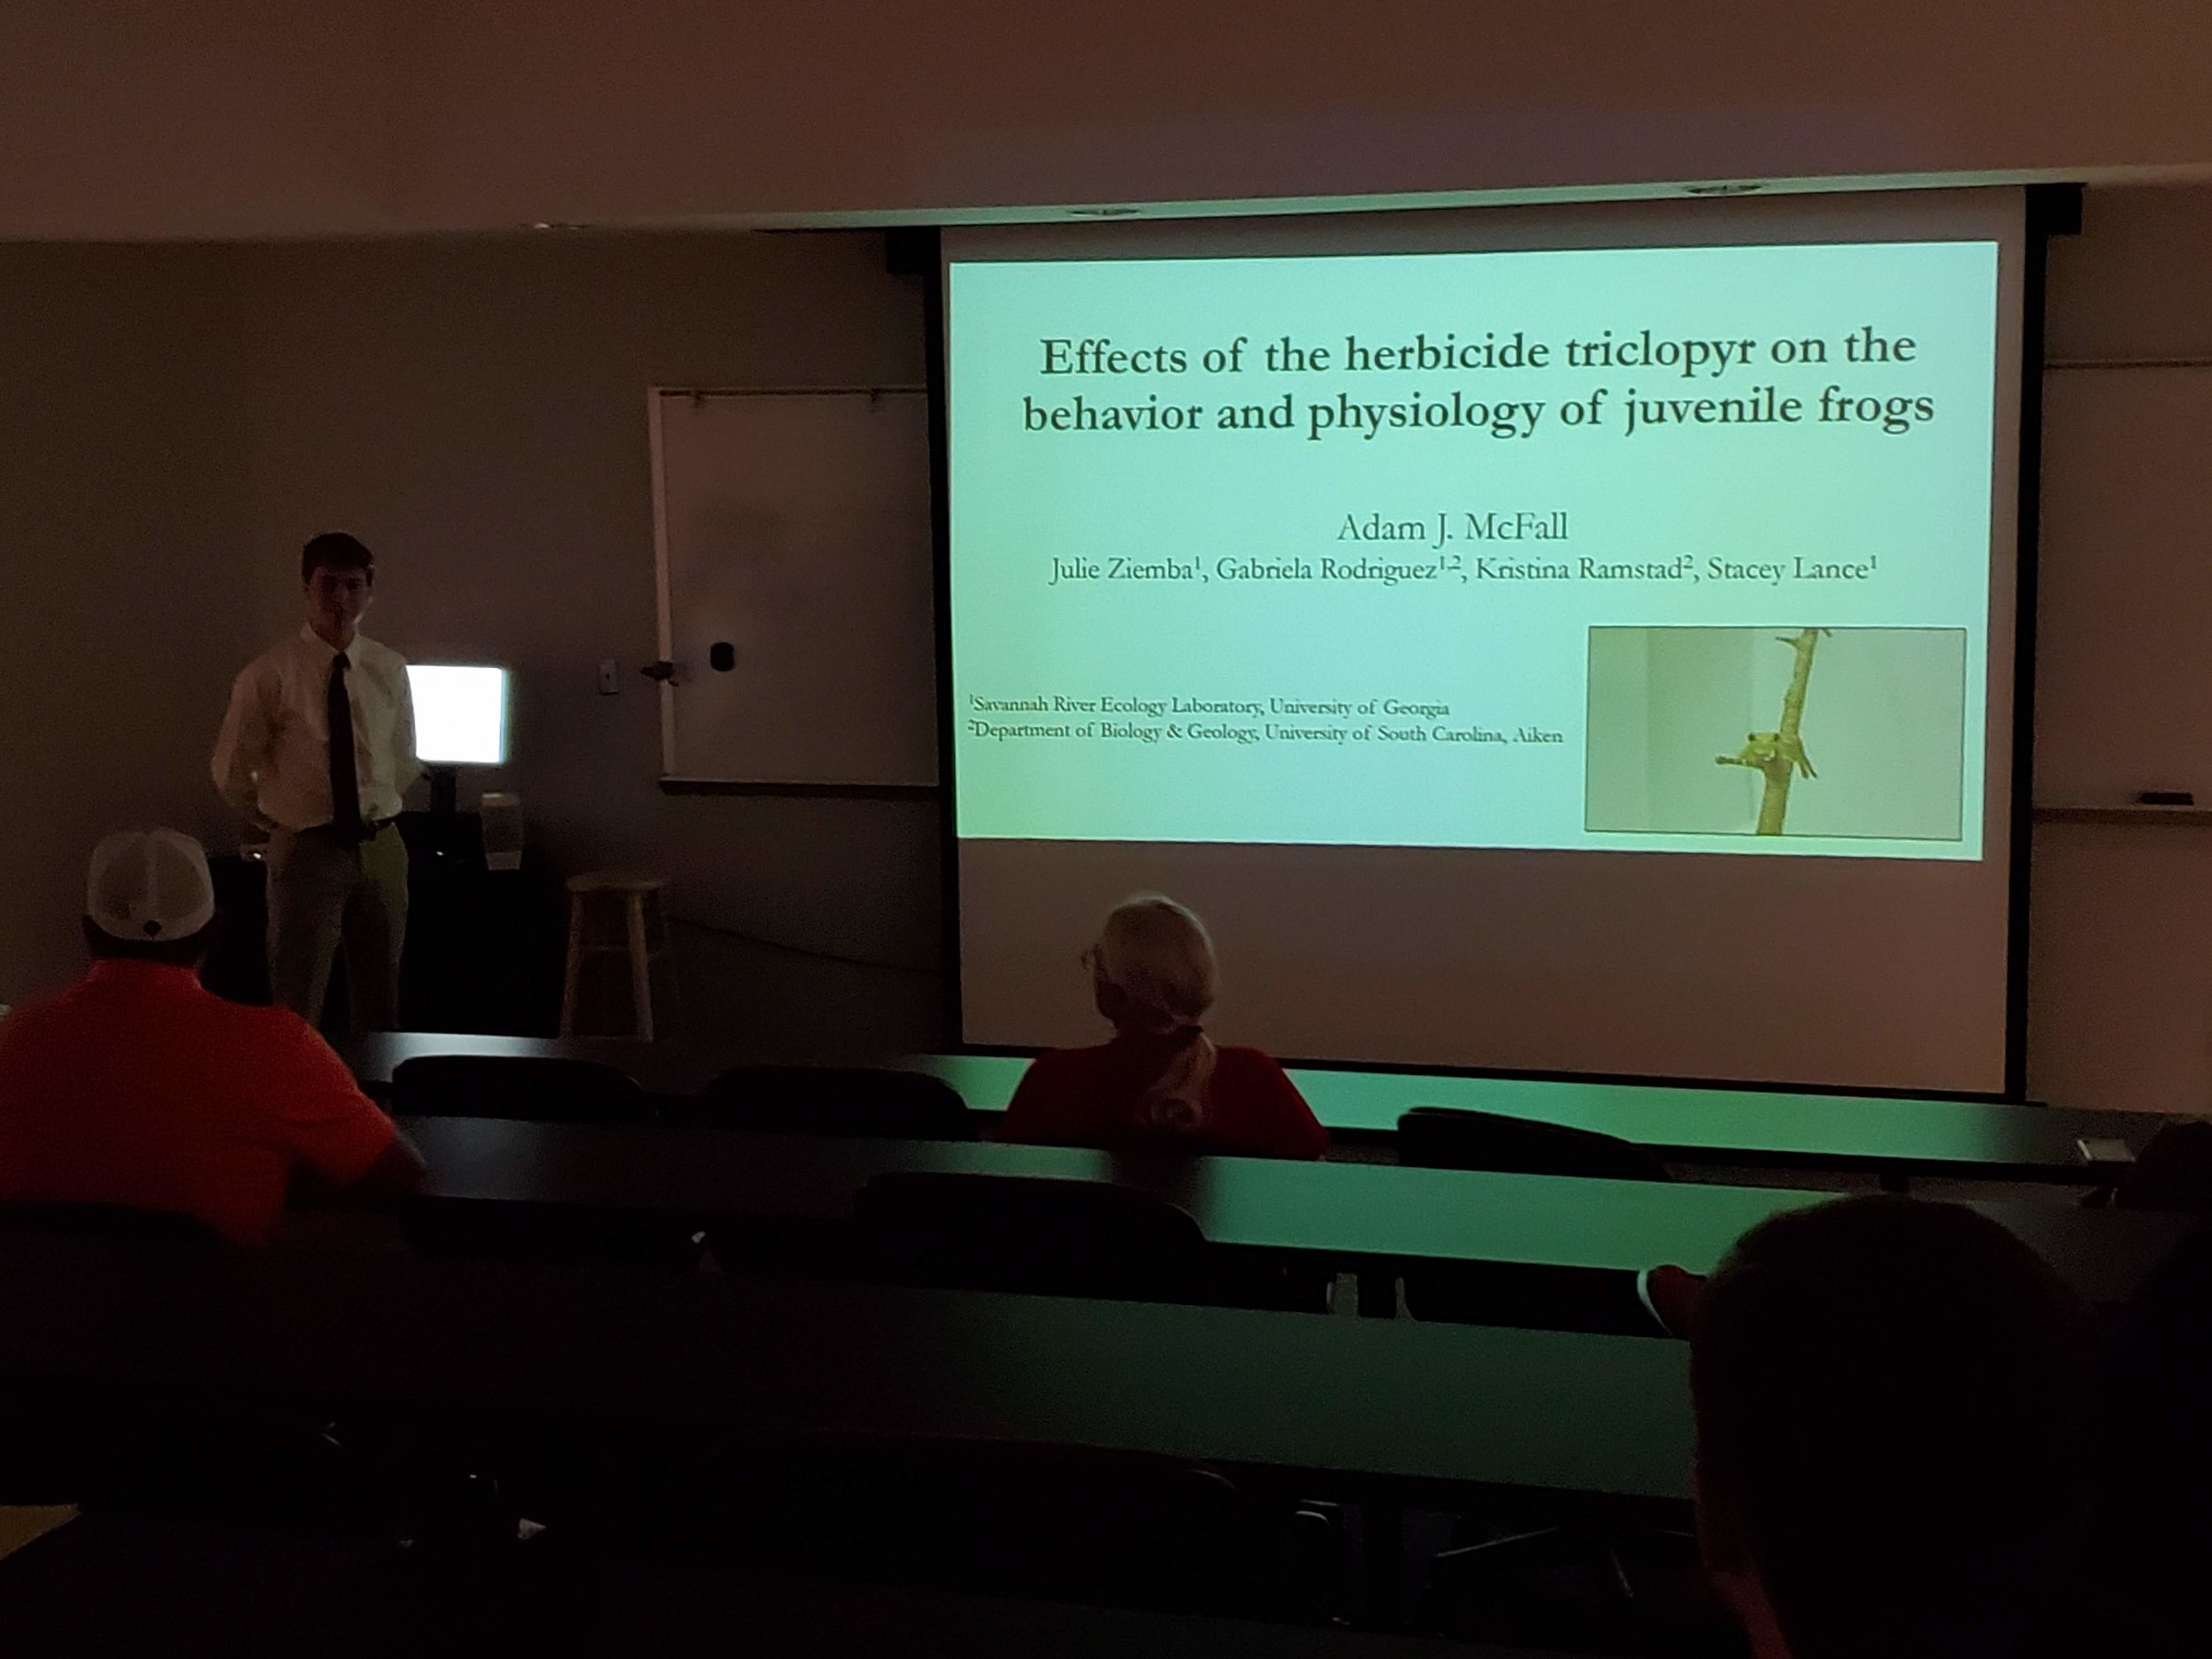 Congratulations to Adam McFall on presenting the research he completed with the Lance Lab as his undergraduate capstone research project at USC-Aiken! - Effects of the herbicide triclopyr on the behavior and physiology of juvenile frogs